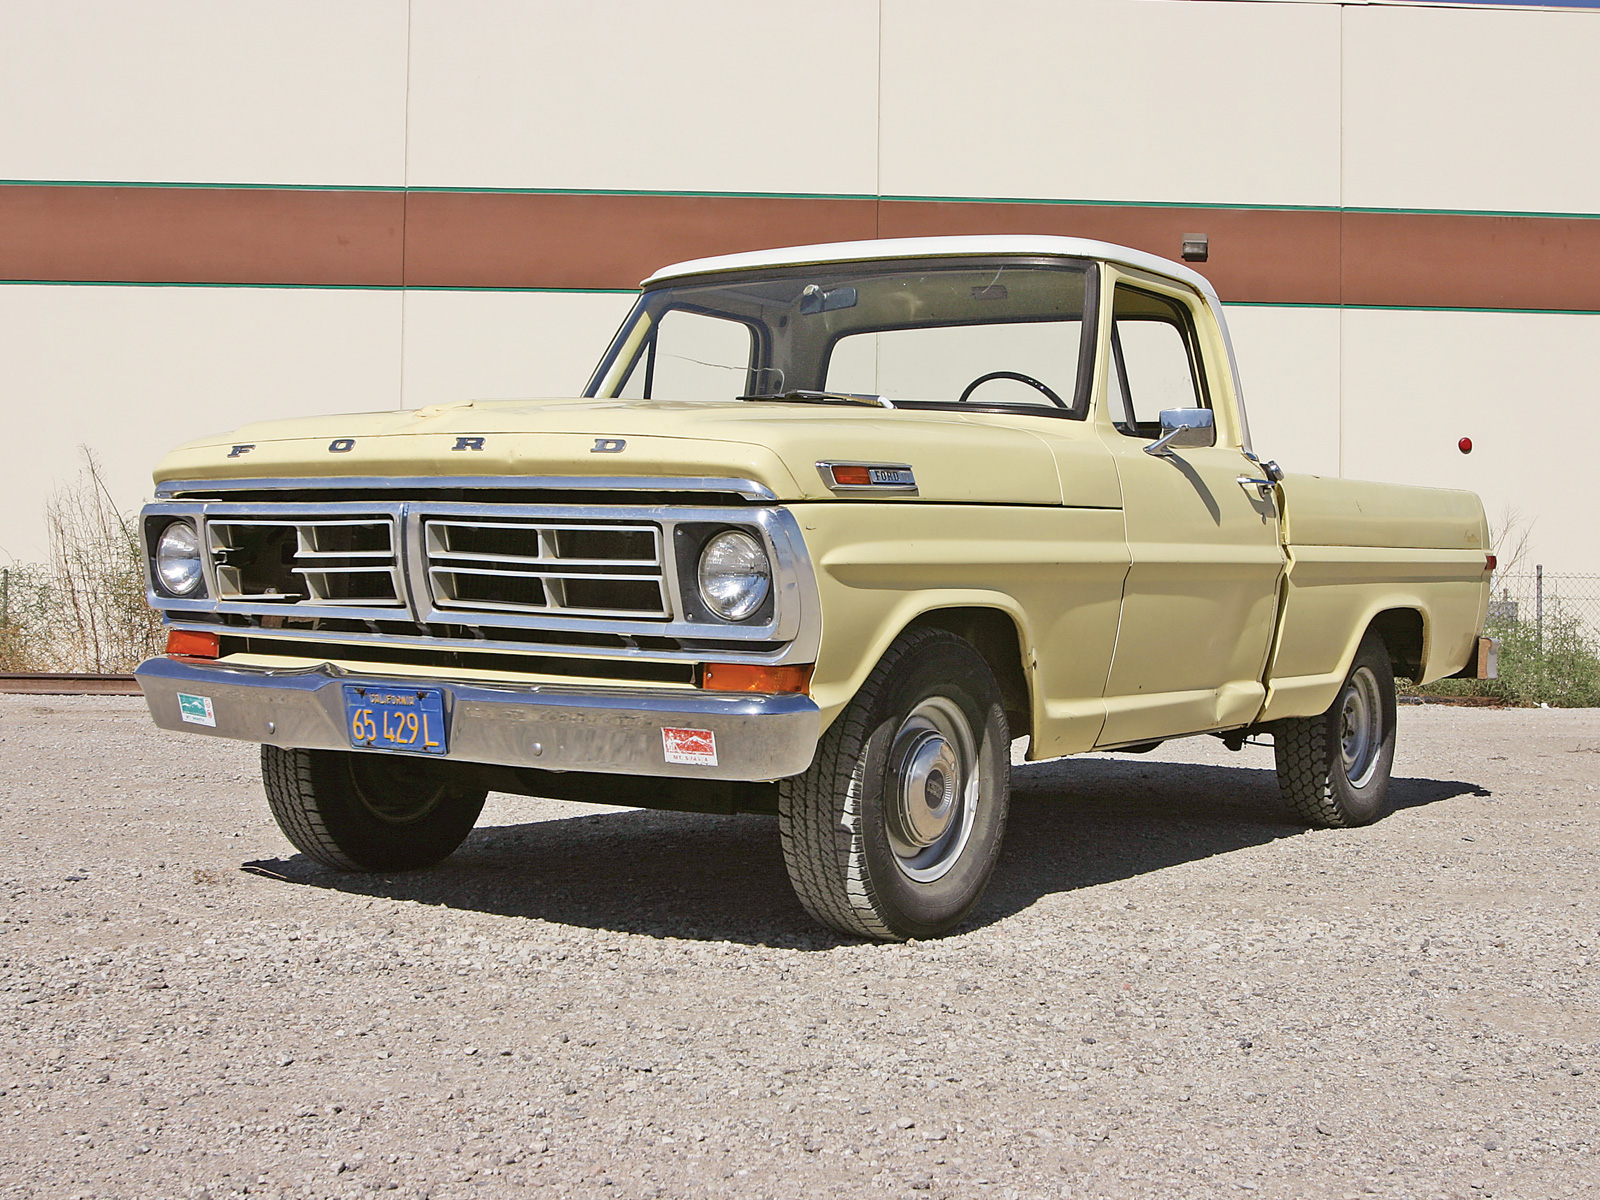 Ford f-100 1972 photo - 2